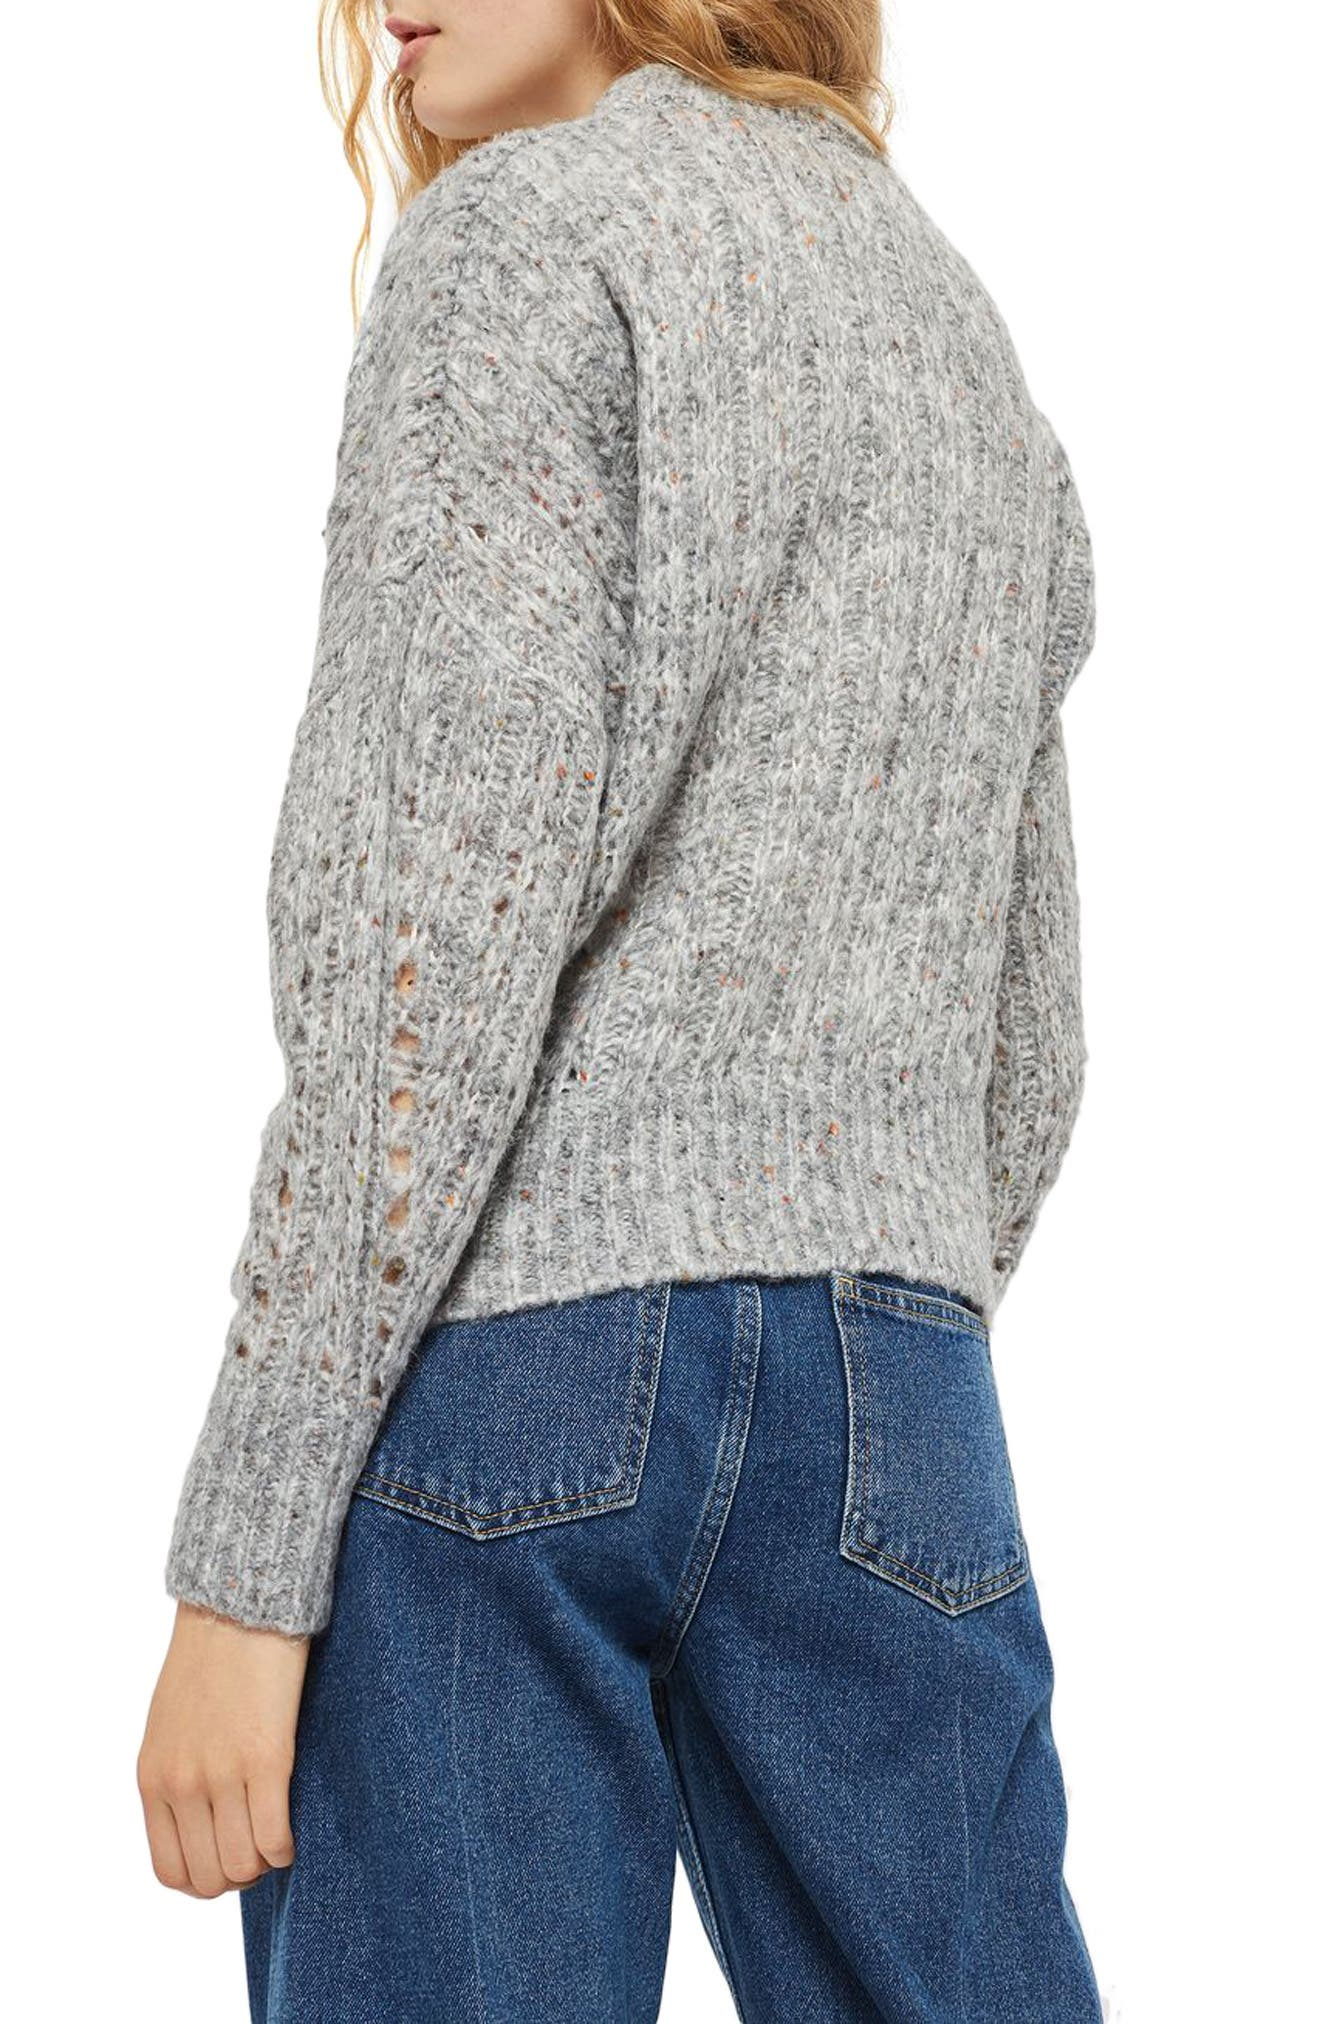 Soft Nep Sweater,                             Alternate thumbnail 3, color,                             Grey Marl Multi